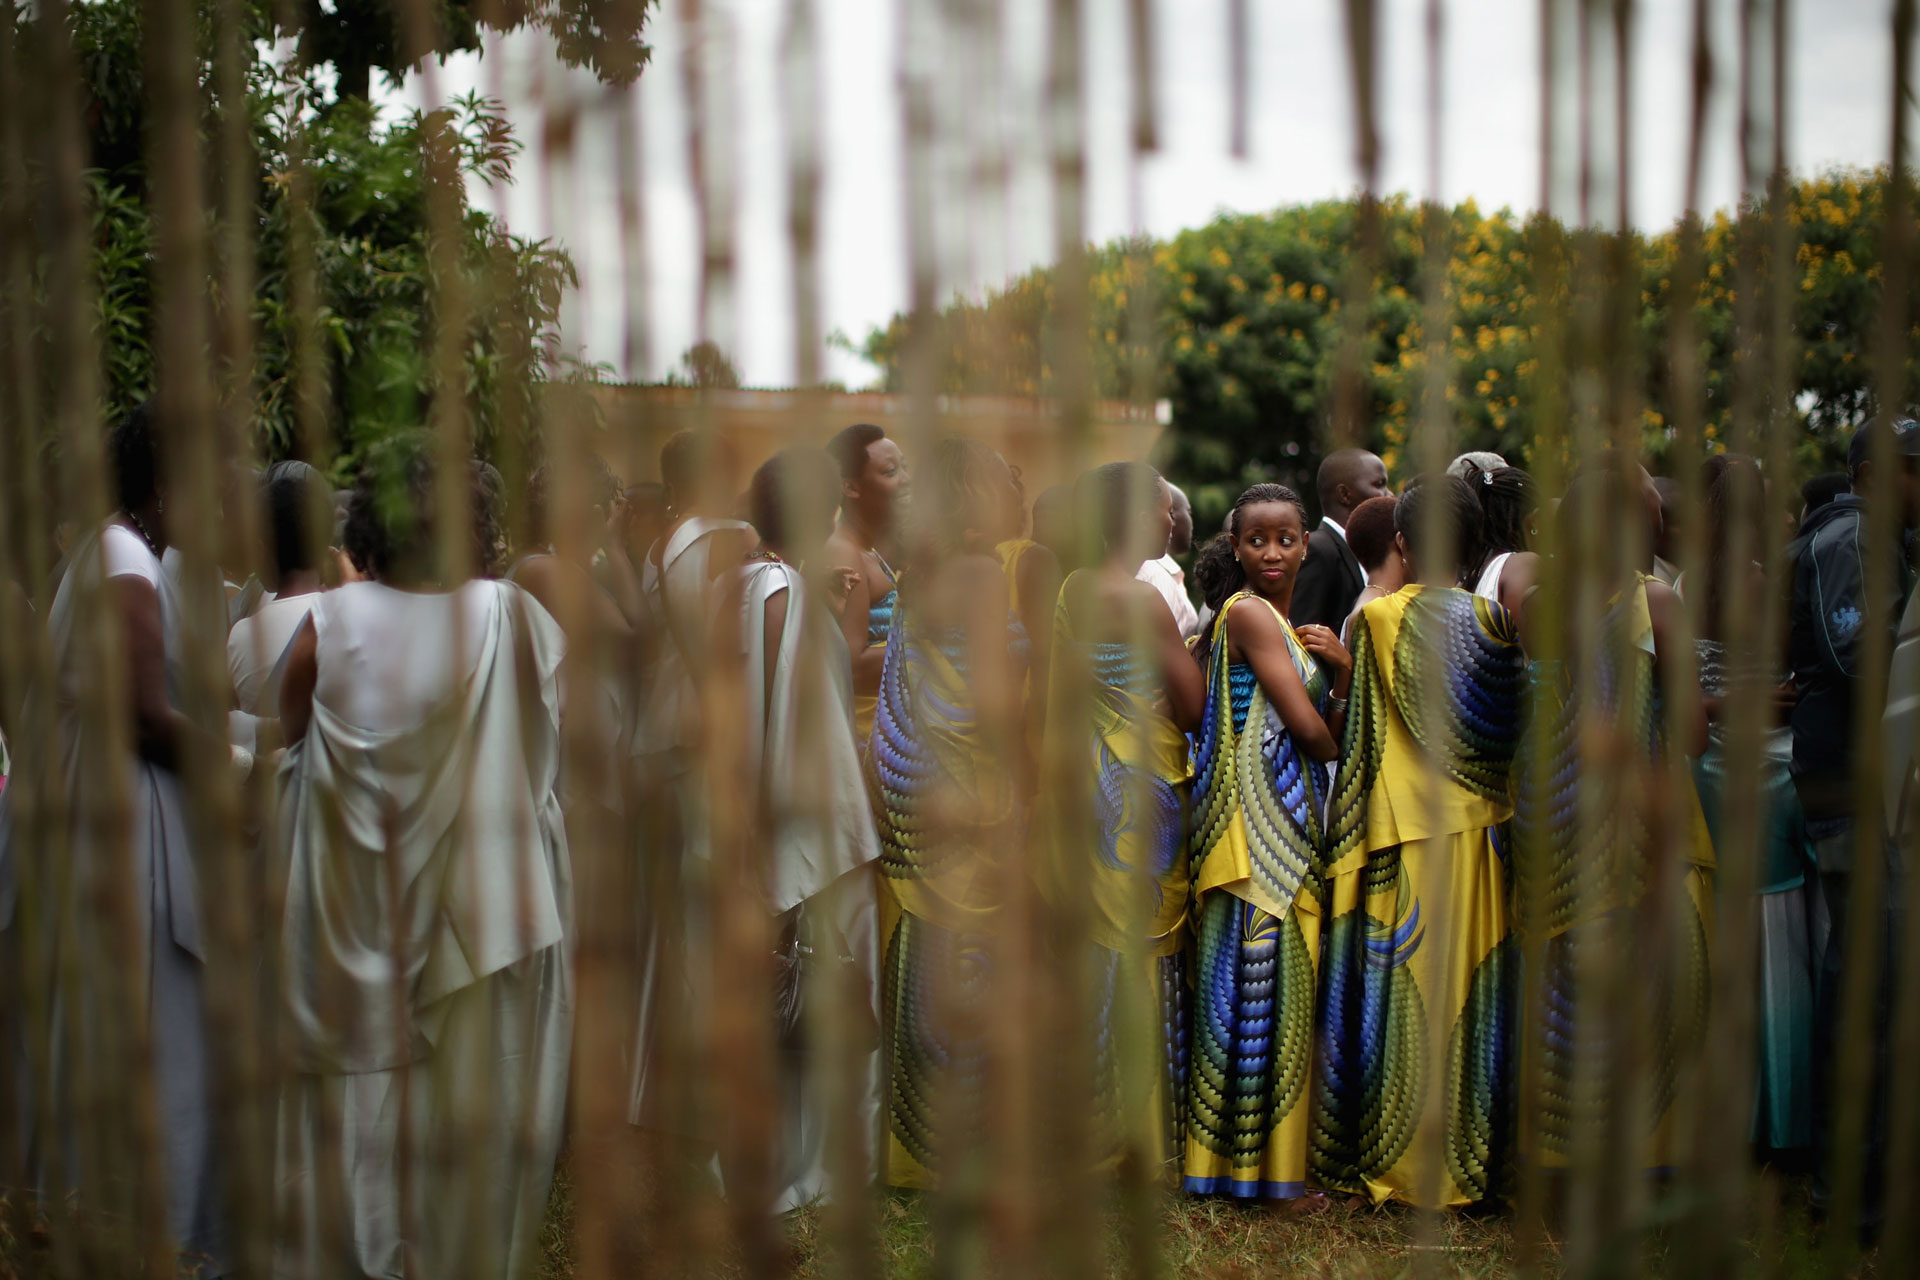 rwanda genocide who is to blame The rwandan genocide, also known as the genocide against the tutsi, was a  genocidal mass  a later investigation by the rwandan government blamed  hutu extremists in the rwandan army in january 2012, a french investigation  was.